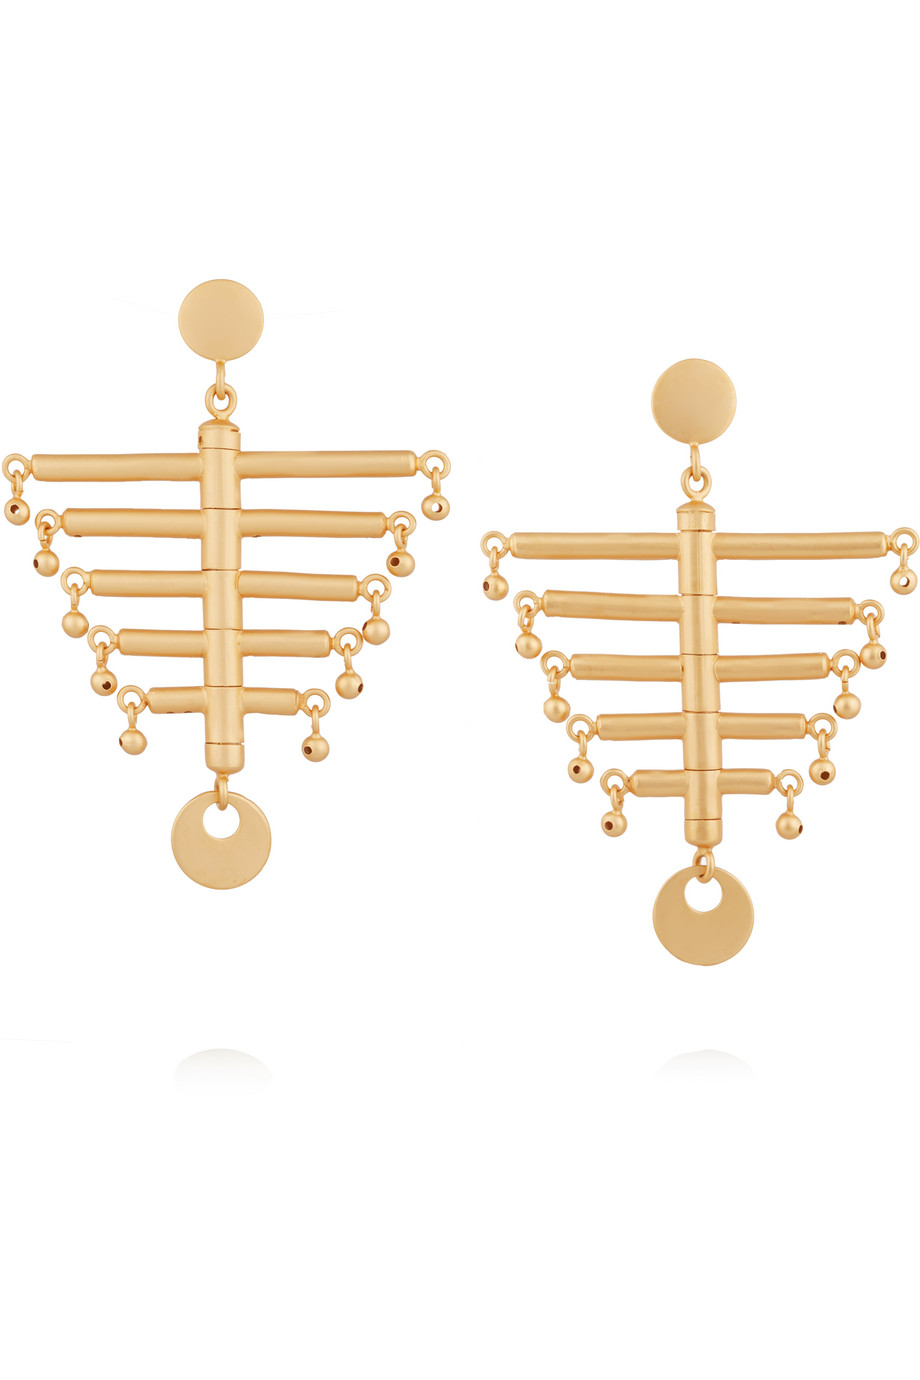 Paula Mendoza The Little Backbone Gold-Plated Earrings, Women's